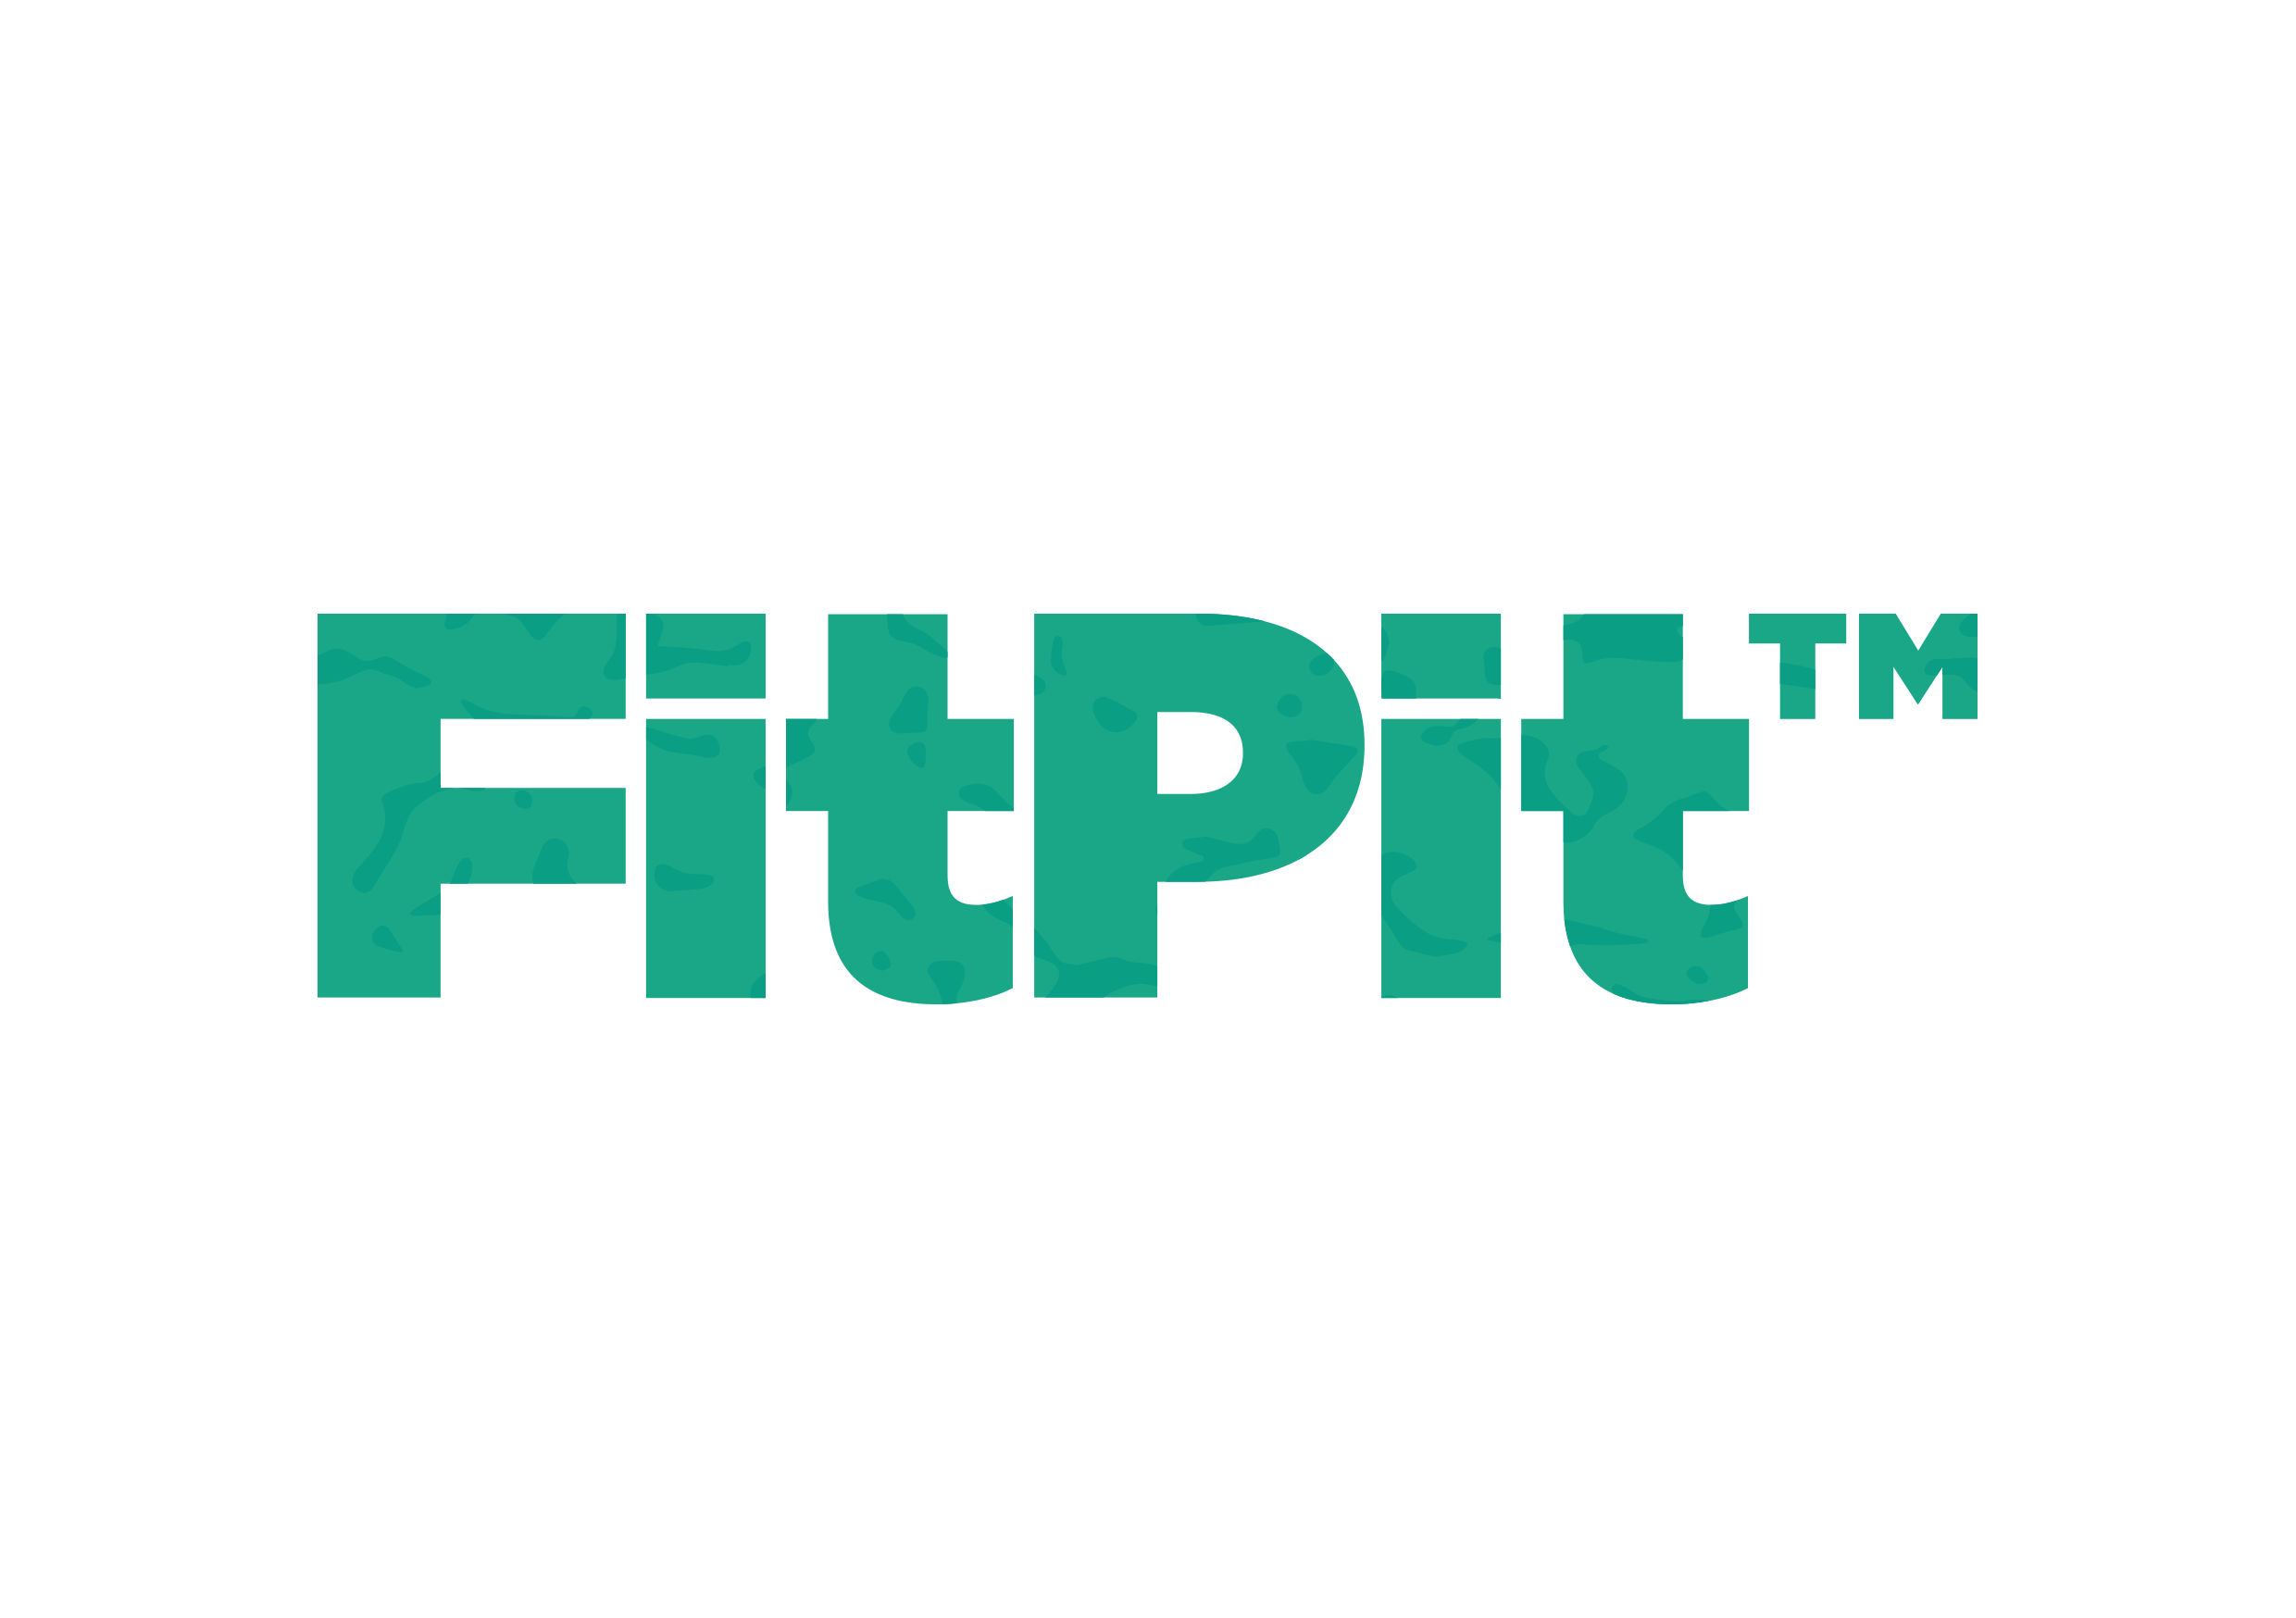 fitpit_logo_final_pattern.png